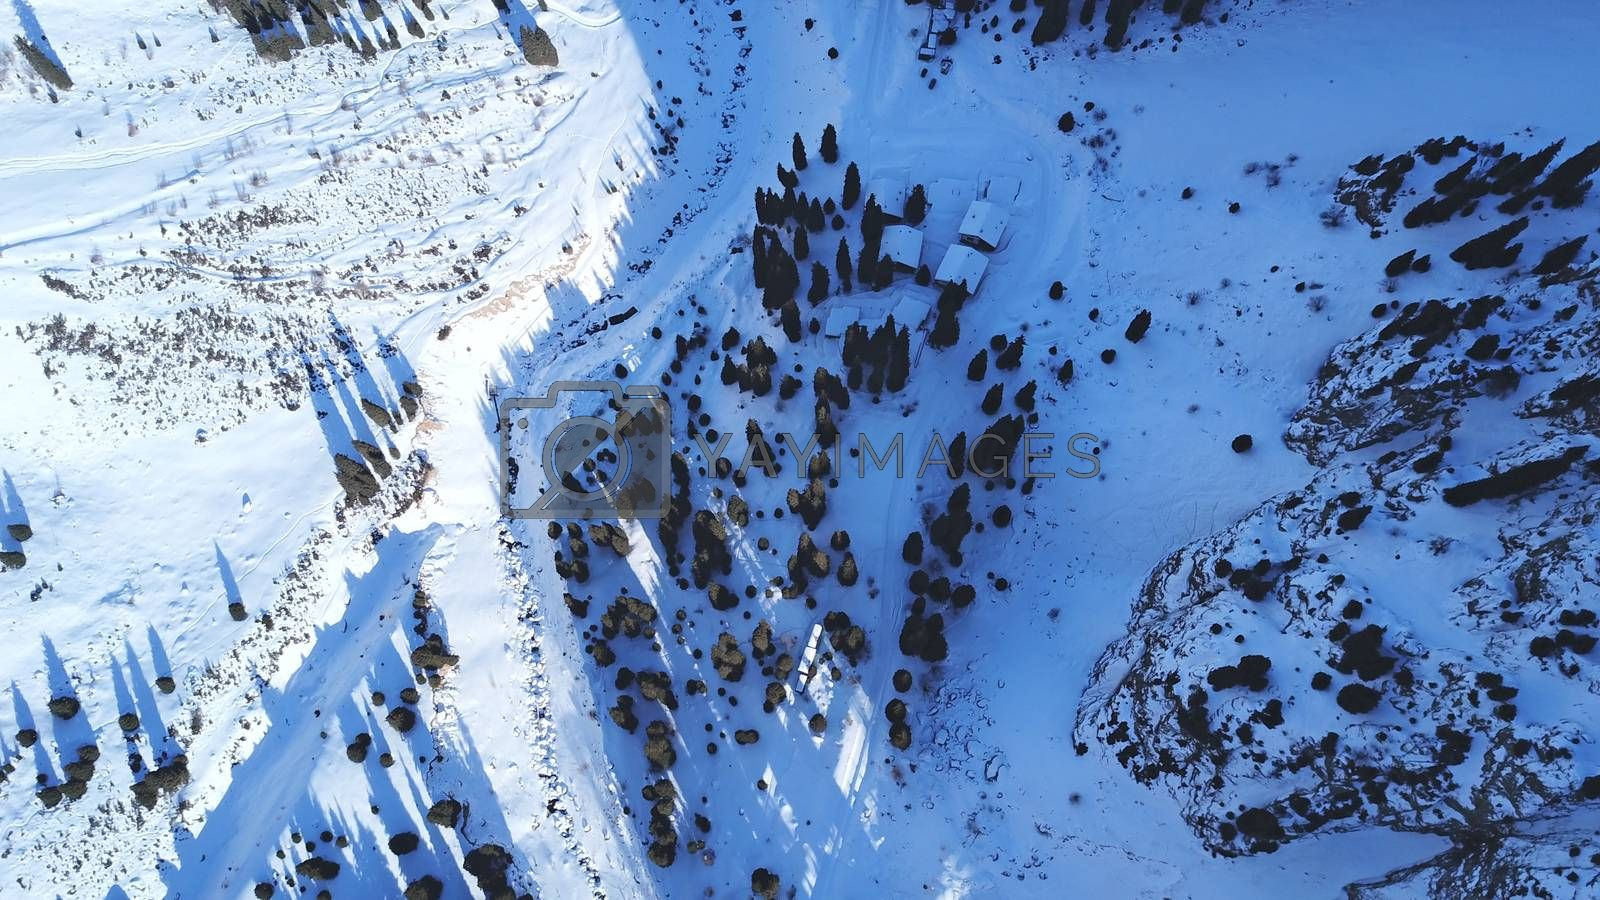 Winter gorge, fir trees and a group of people. Ready-made trail through the snow gorge. A group of climbers is walking along it. Top view from a drone. The shadows of the trees fall on the deep snow.